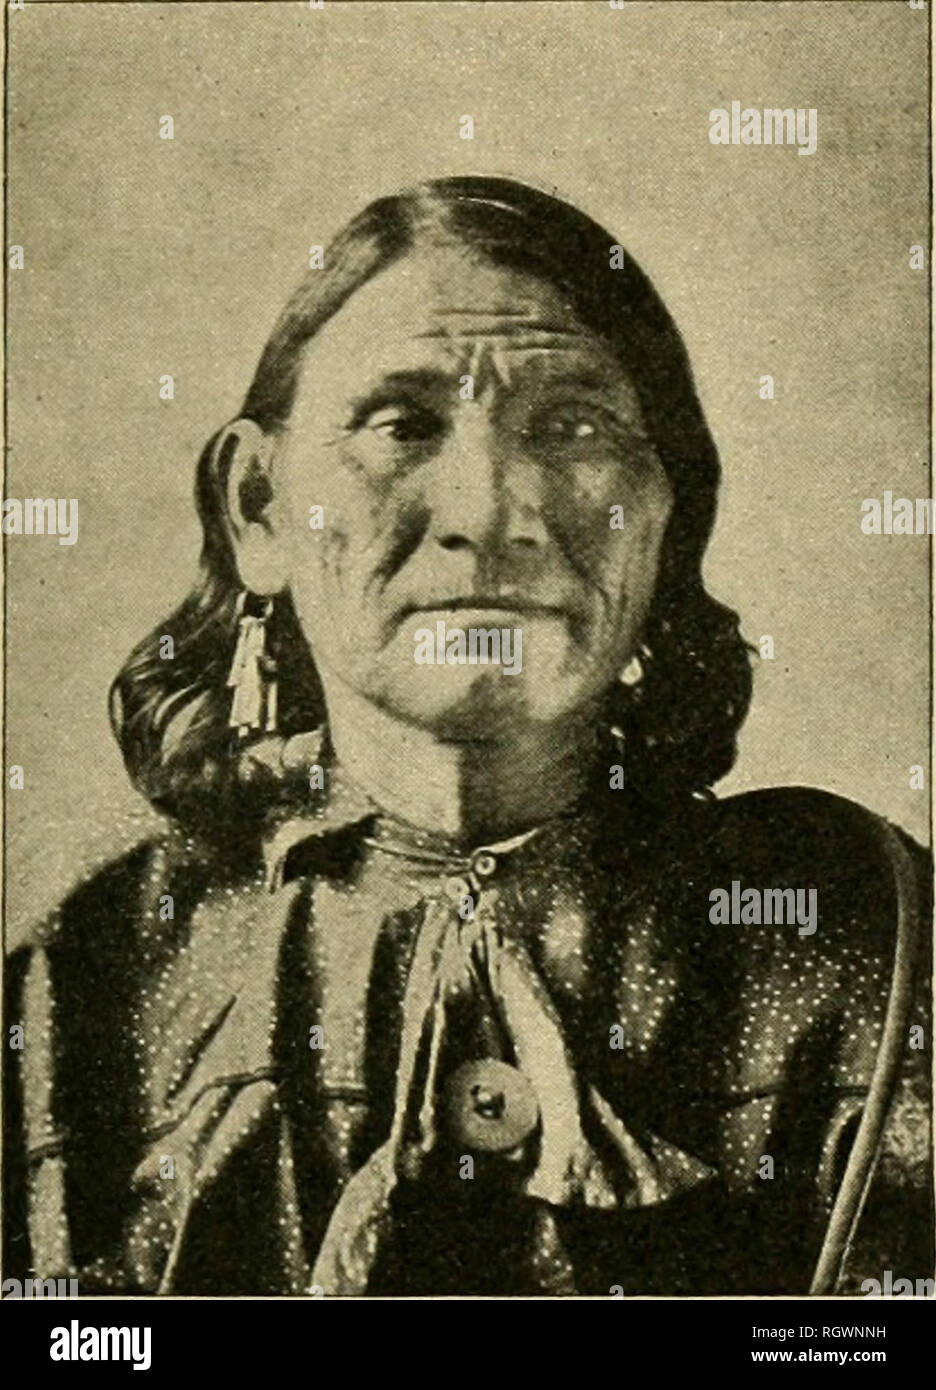 . Bulletin. Ethnology. BULL. 30] DELAWAEE 385 men, are descended several well-known families of Wisconsin and Minnesota. (C. T.) Delaware. A confederacy, formerly the most important of the Algonquian stock, occupying the entire basin of Delaware r. in K. Pennsylvania and s. e. New York, together with most of New Jersey and Delaware. Tliey called themselves Lenapeor Leni-lenape, equivalent to 'real men,' or 'native, genuine men'; the Eng- hsh knew them as Delawares, from the name of their principal river; the Frencli called them Loups, 'wolves,' a term probably applied originally to the Ma- hic Stock Photo